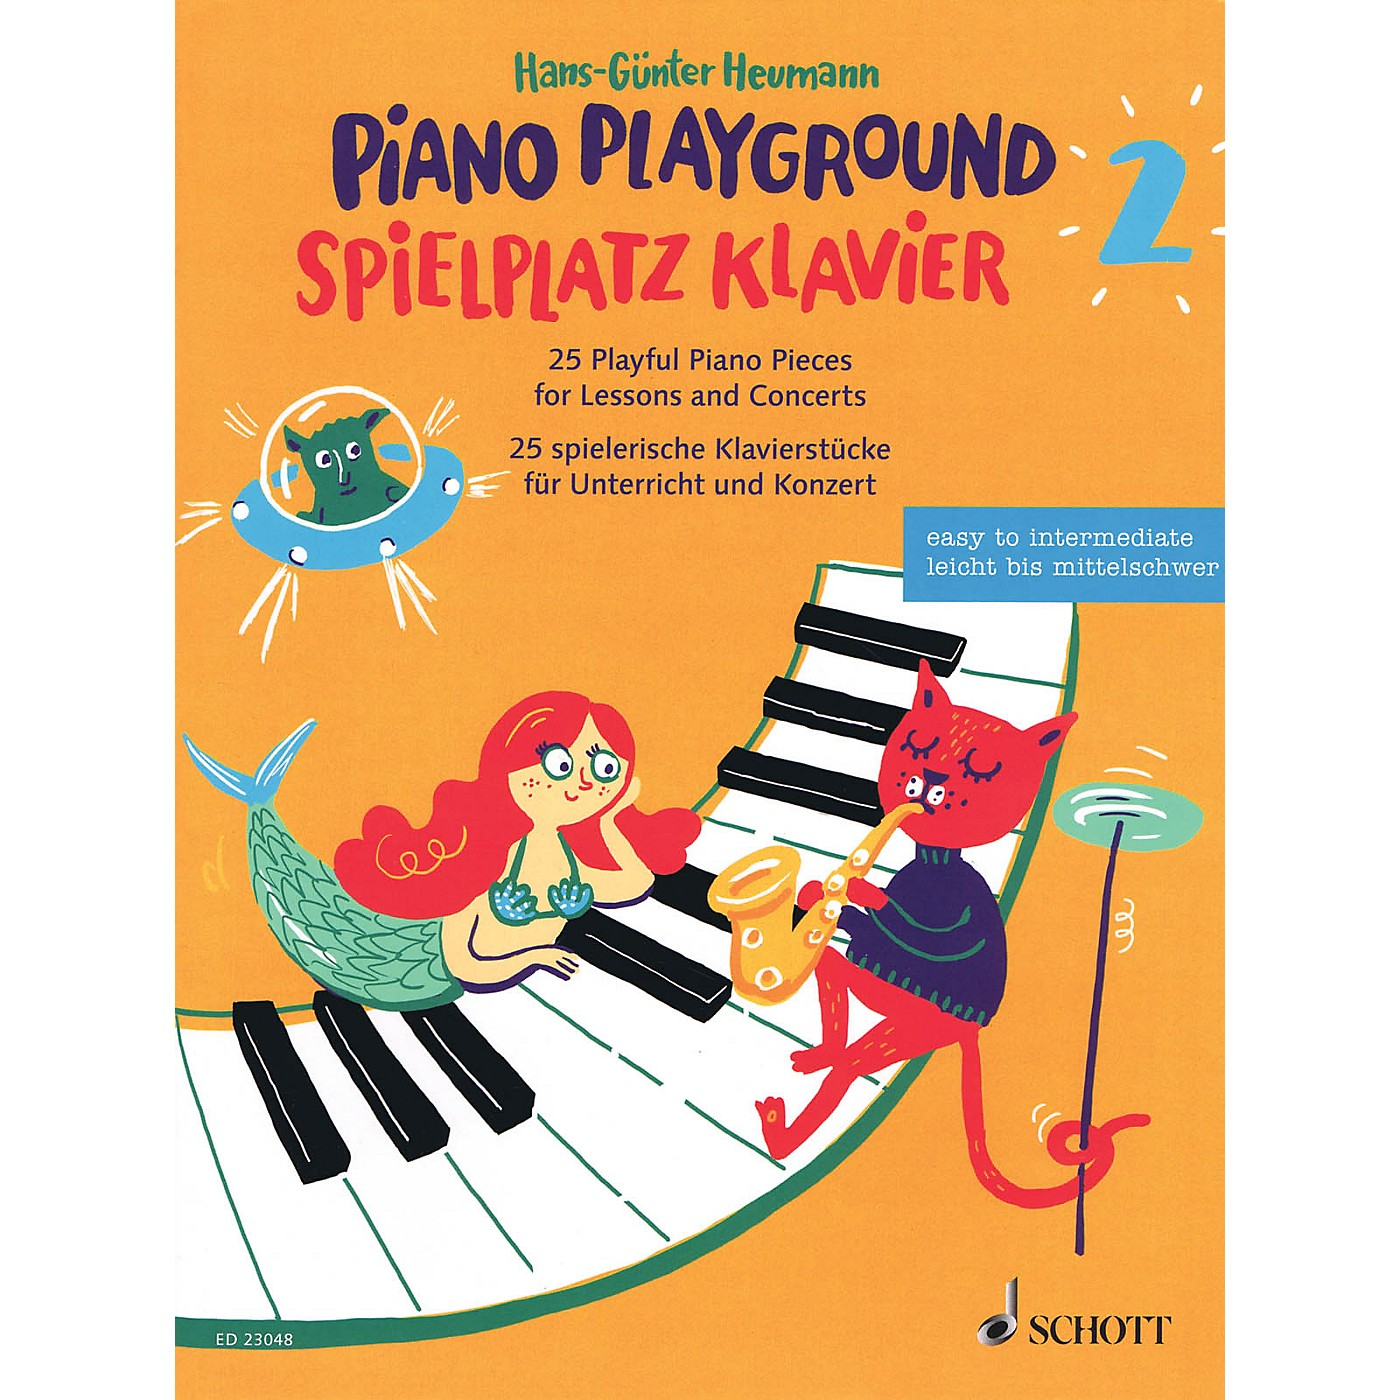 Schott Piano Playground Book 2 (Spielplatz Klavier 2) 25 Playful Piano Pieces for Lessons and Concerts by Hans-Gunter Heumann thumbnail